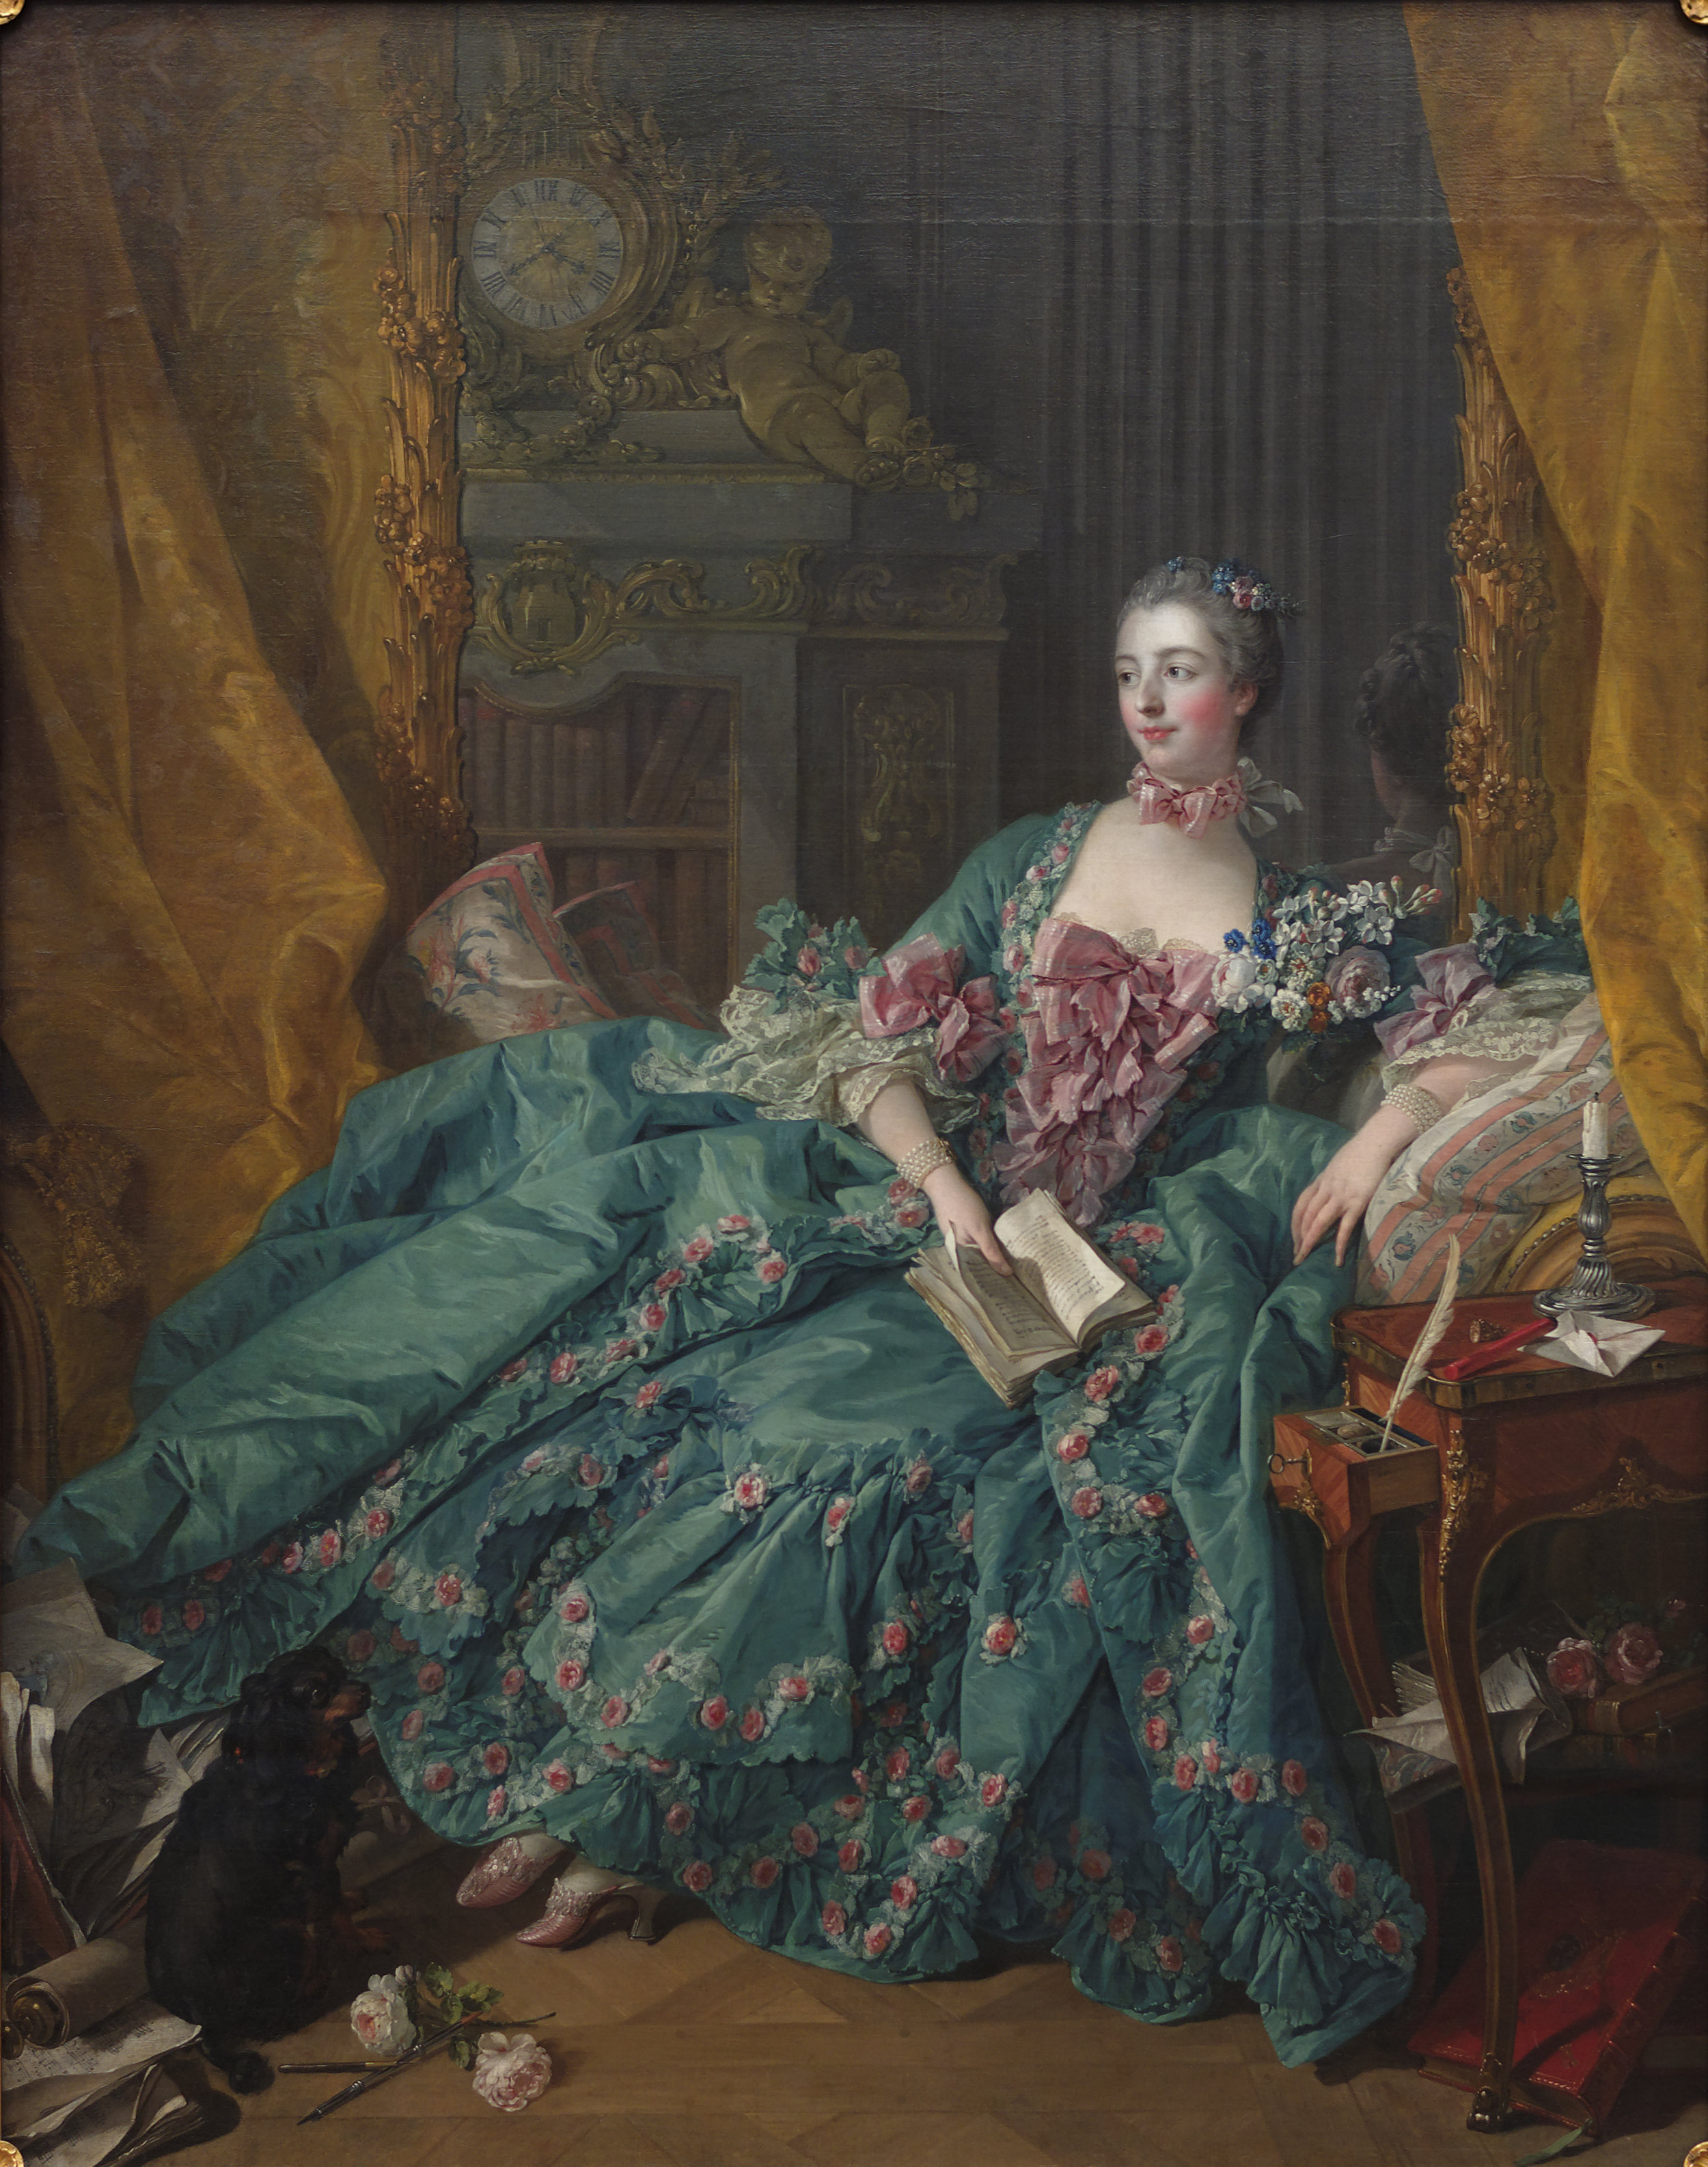 François Boucher [CC BY-SA 4.0 (https://creativecommons.org/licenses/by-sa/4.0)], via Wikimedia Commons